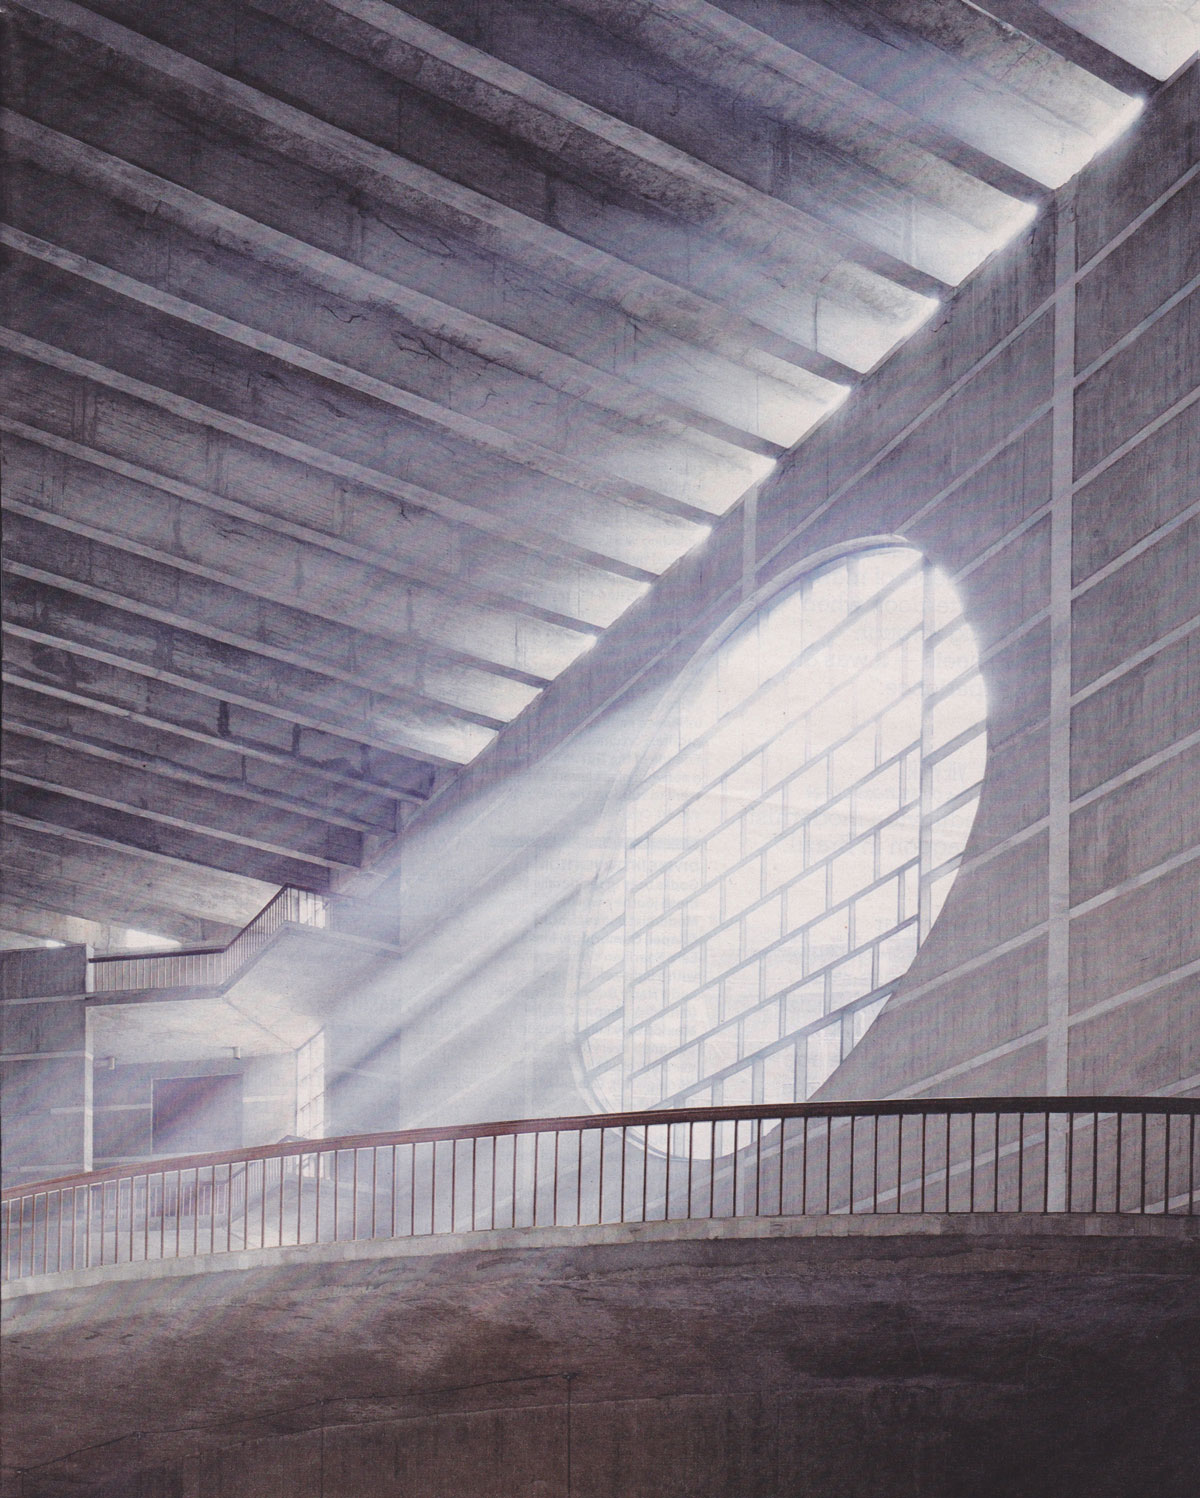 louis kahn an architect of light the power of light and shadow